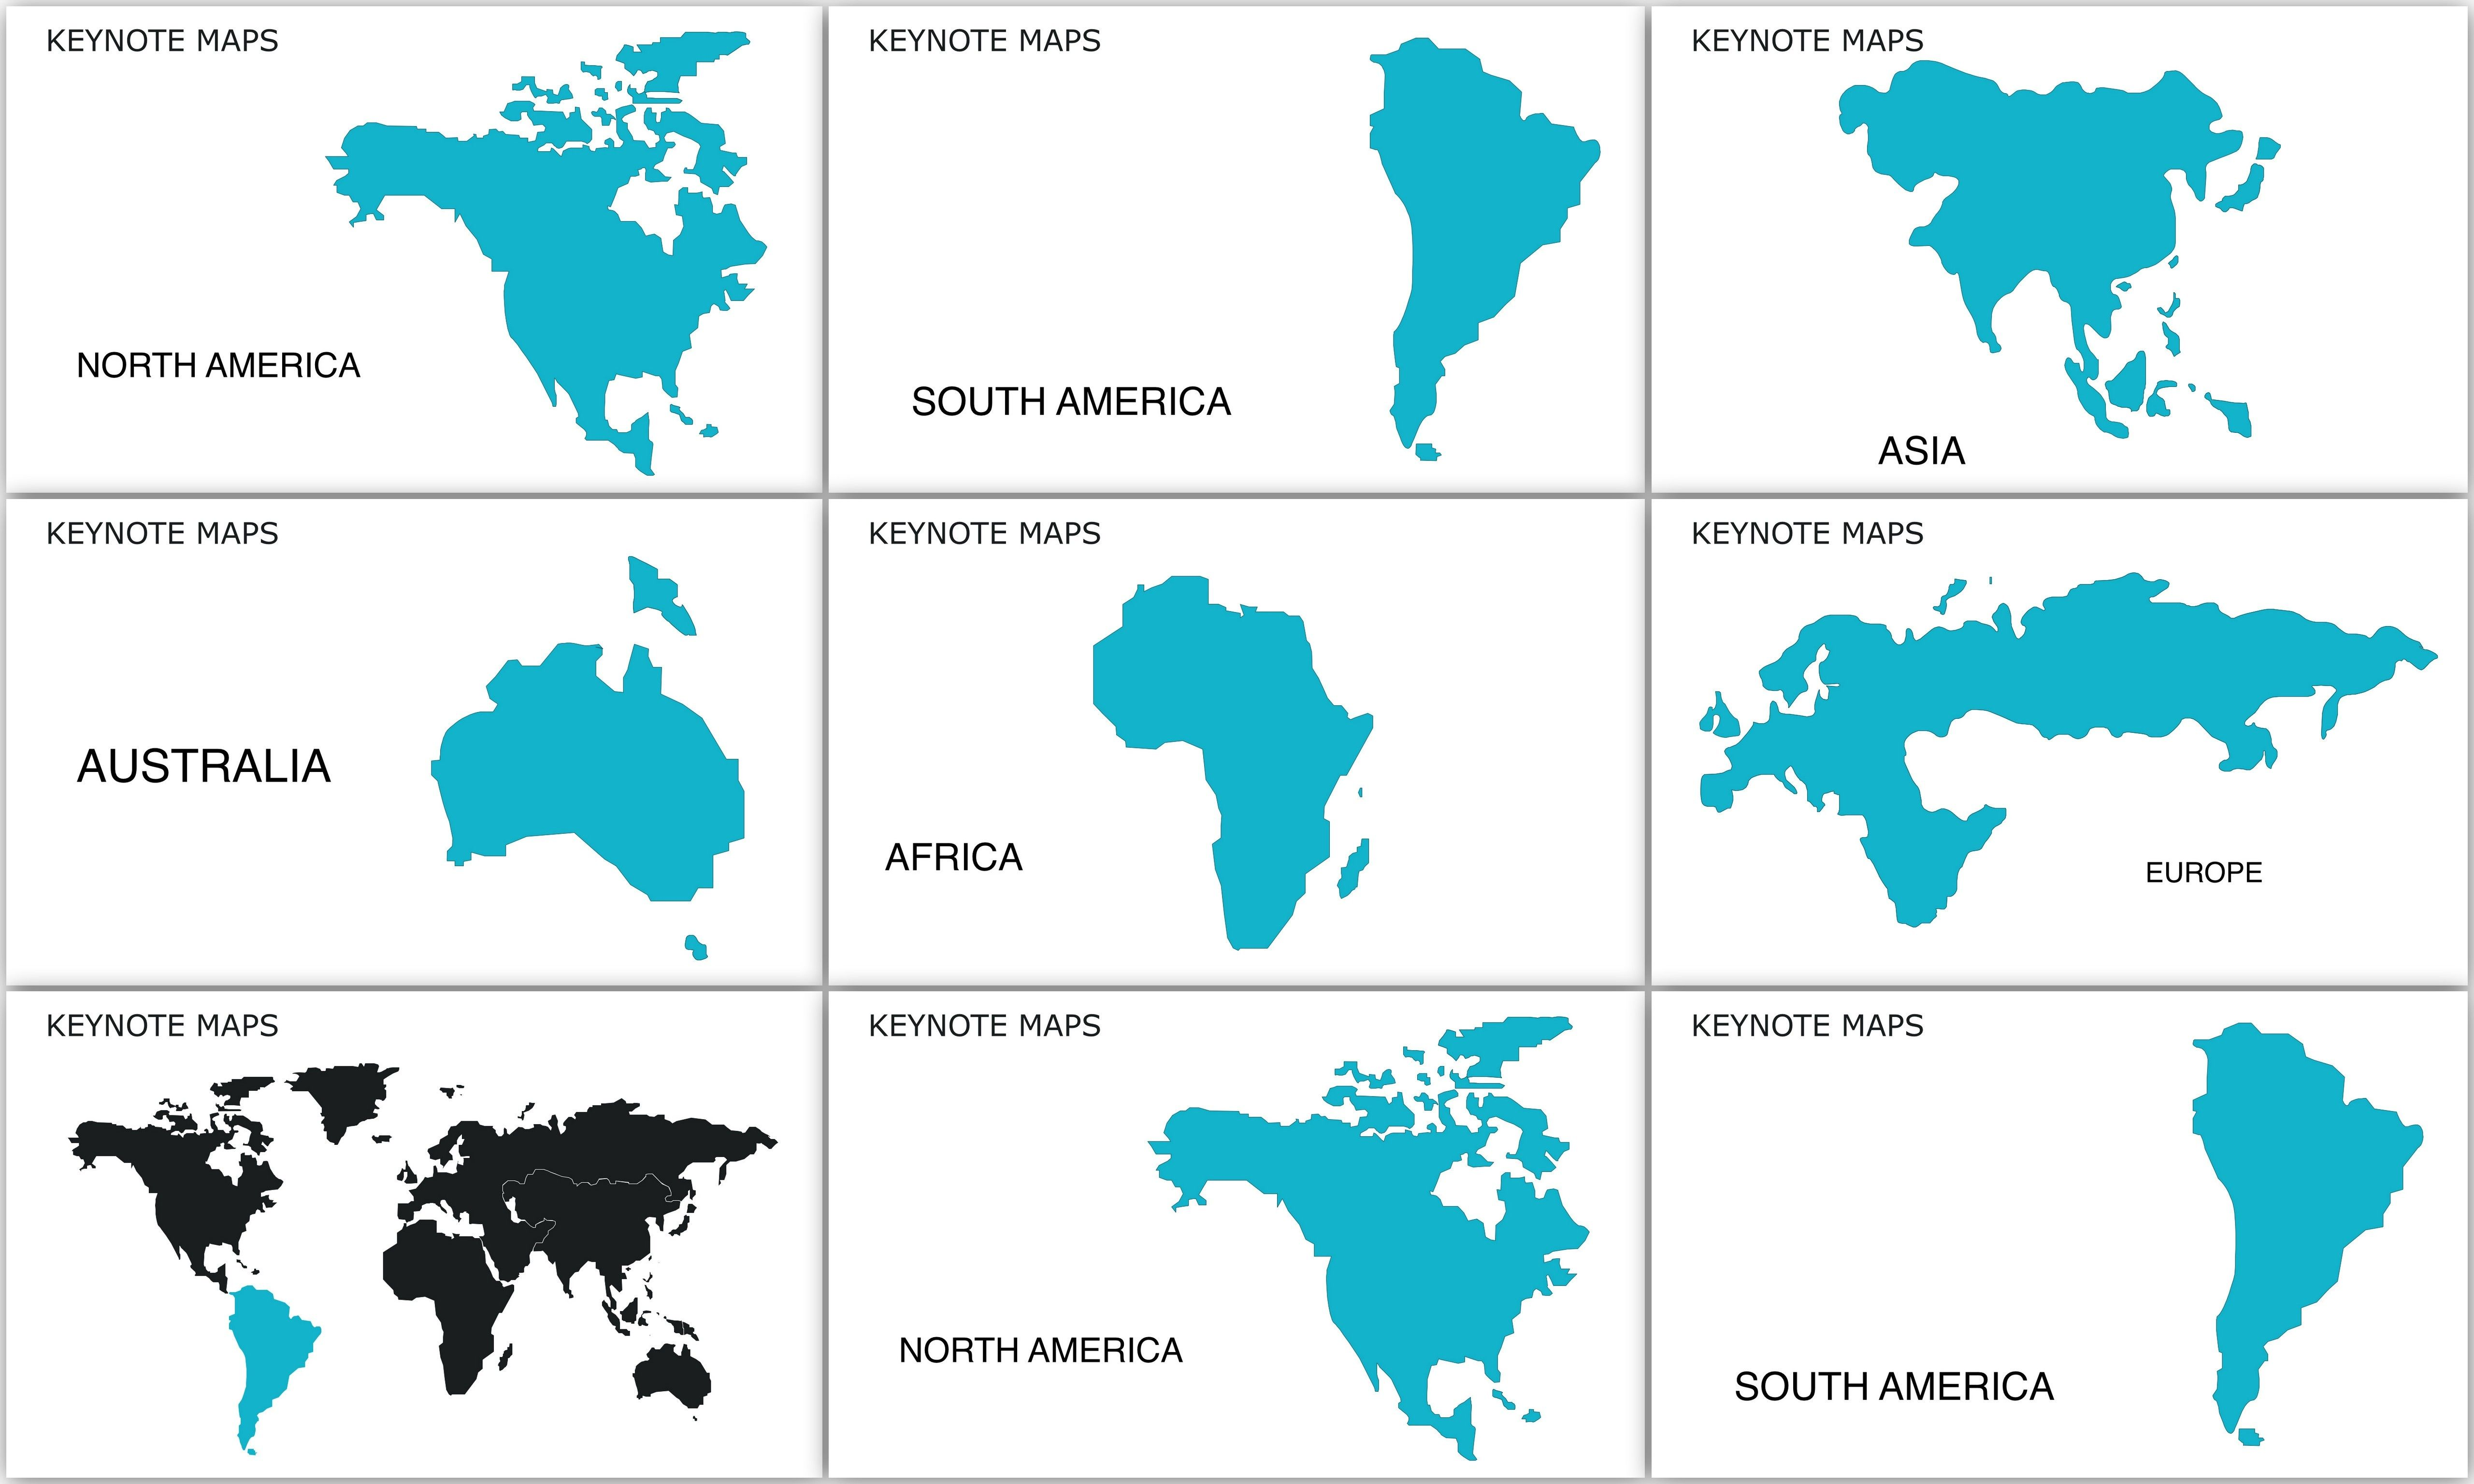 Keynote map of world keynote maps templates pinterest animation world keynote maps animation world keynote maps templates for presentation in the modern political map of the world is represented by about gumiabroncs Images